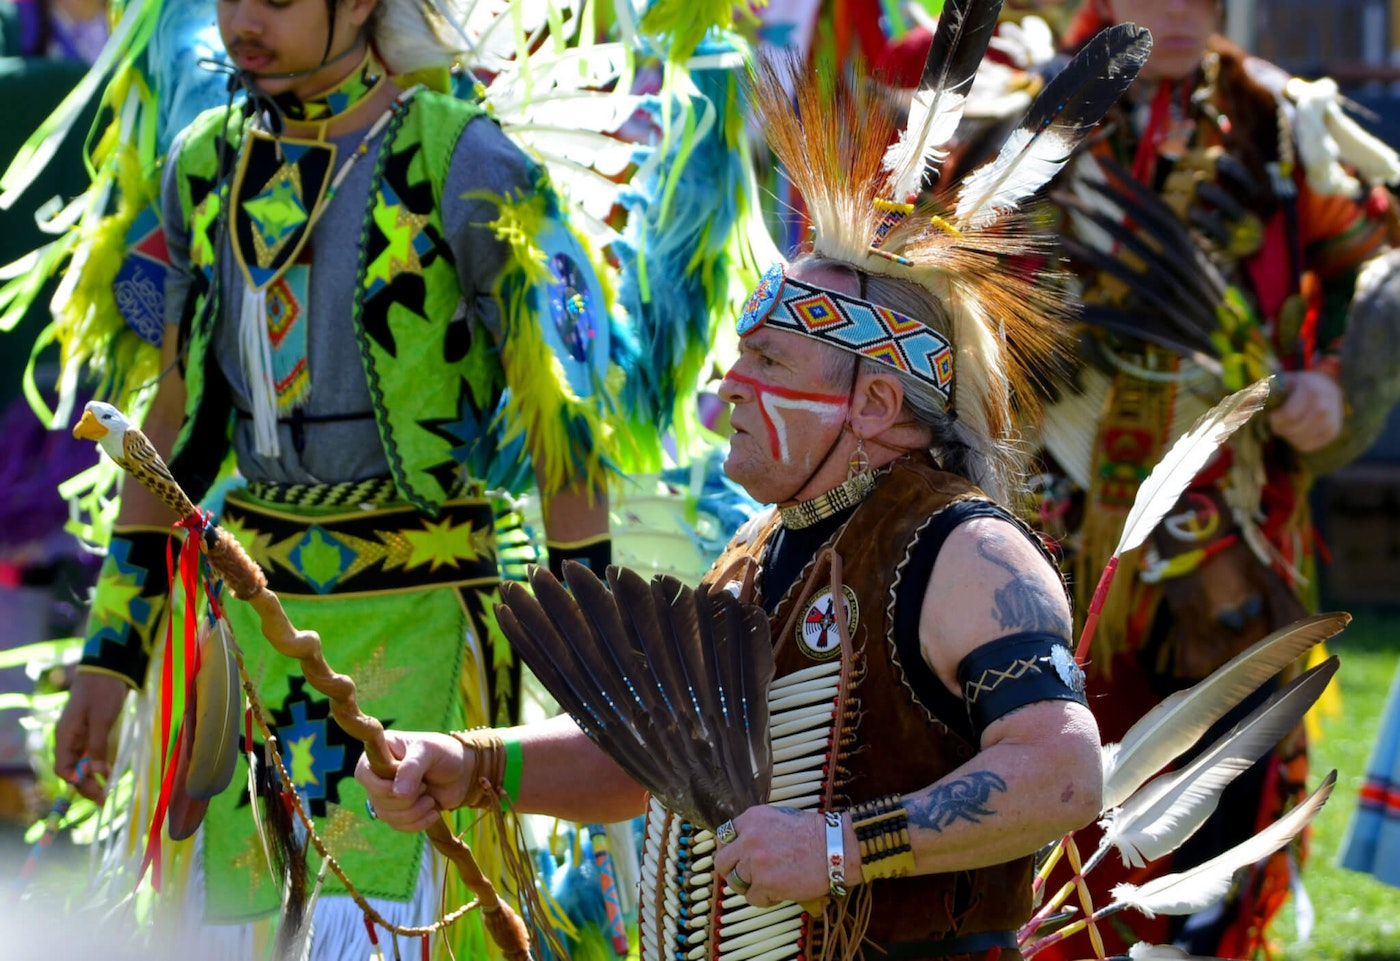 Members of the Mocanan tribe are pictured here at the 2018 Blacksburg Native Spring Pow Wow, taking part in a traditional dance.